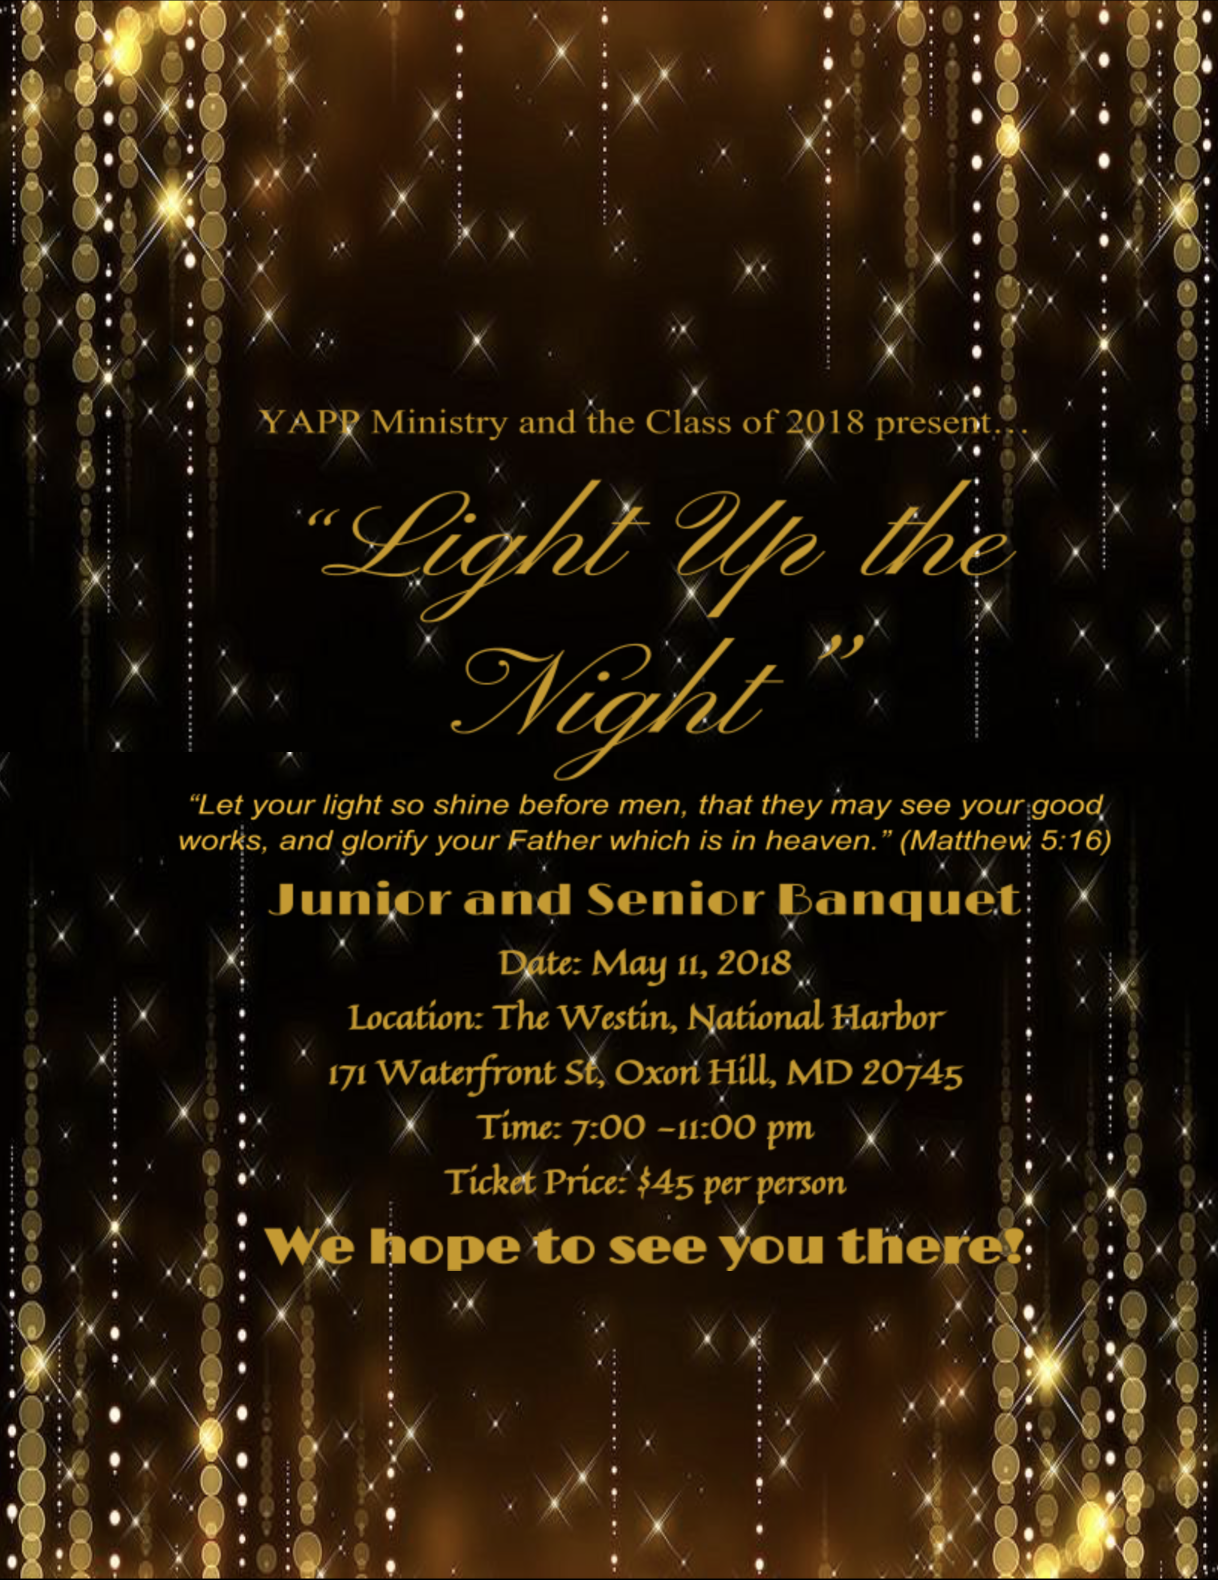 Banquet Celebration Flyer